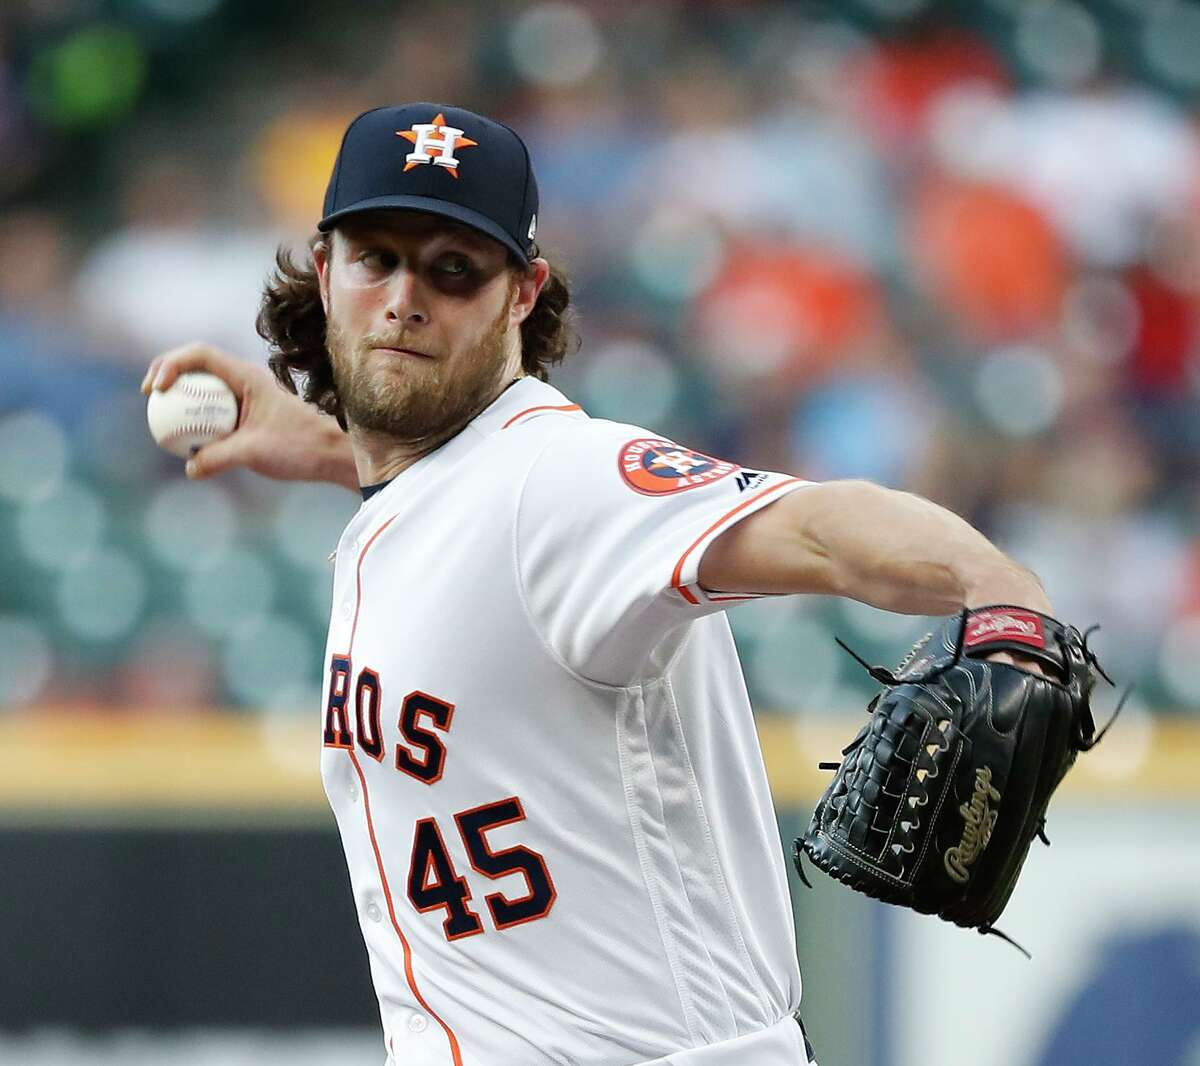 No one has pitched better since the All-Star break than Gerrit Cole, who has gone 5-0 with a 2.25 ERA. That means he may be too rich for Astros blood next season.